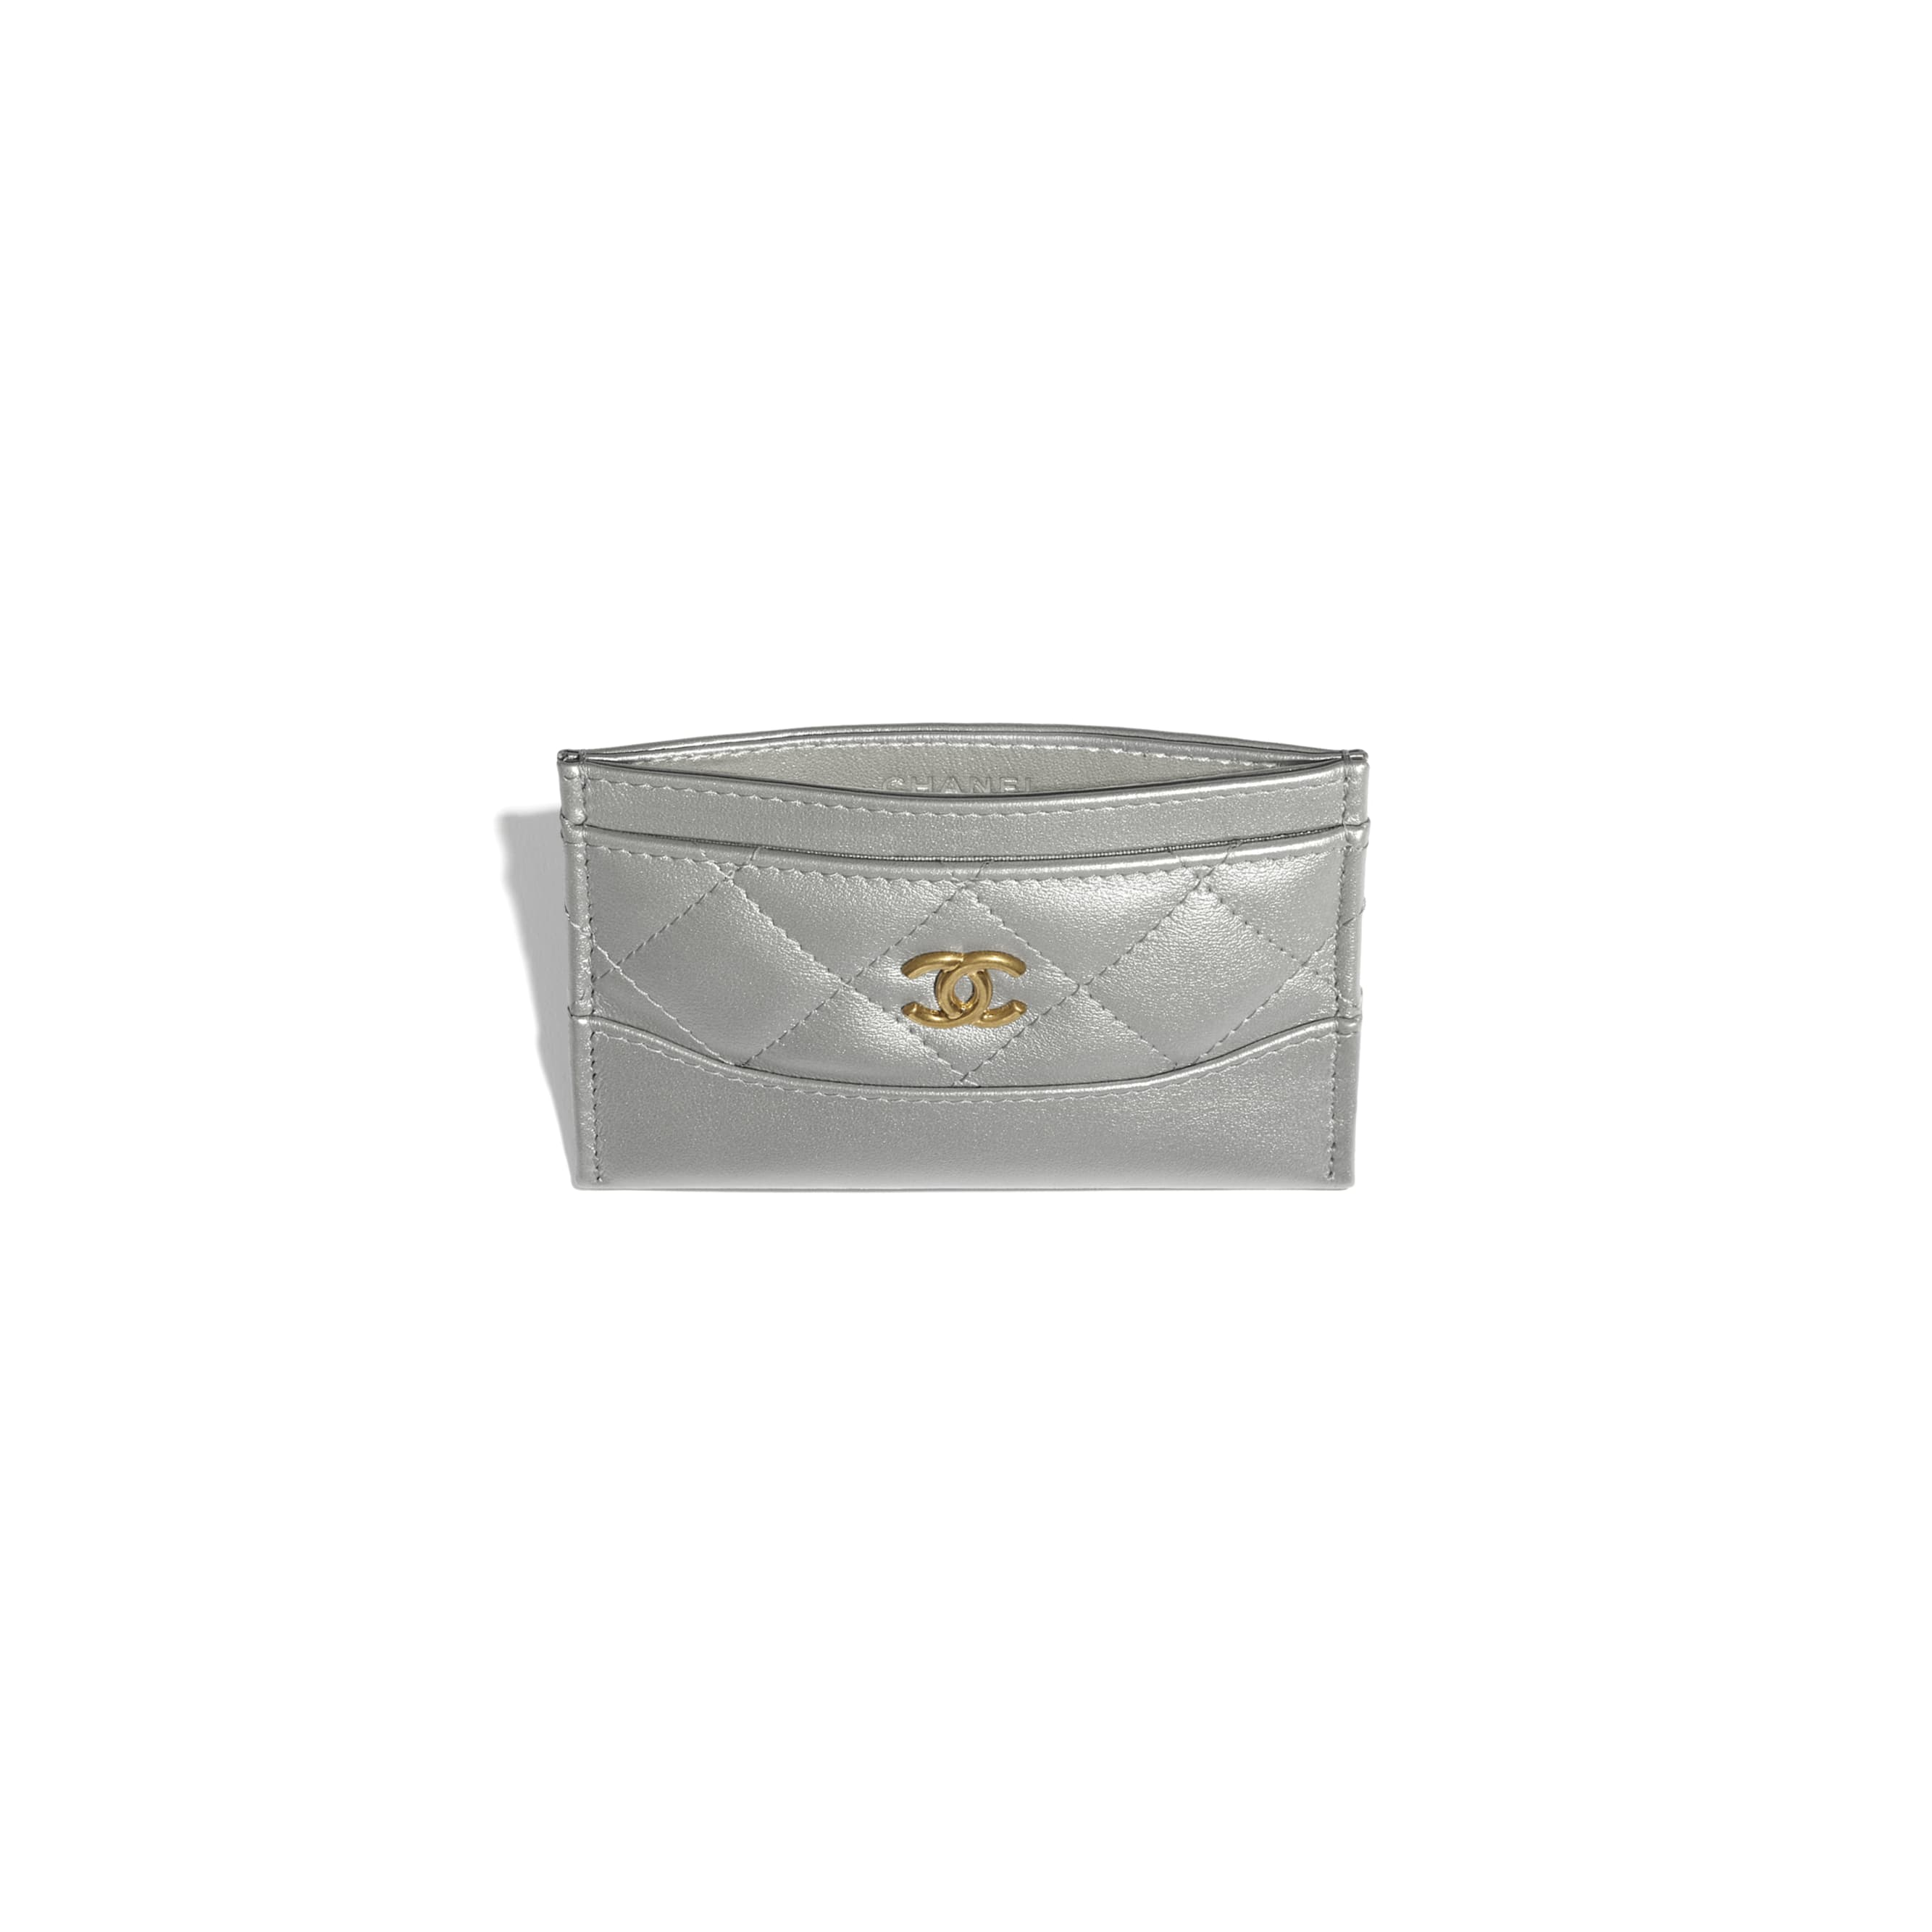 Card Holder - Silver - Metallic Aged Calfskin, Metallic Caflskin & Gold-Tone Metal - CHANEL - Other view - see standard sized version